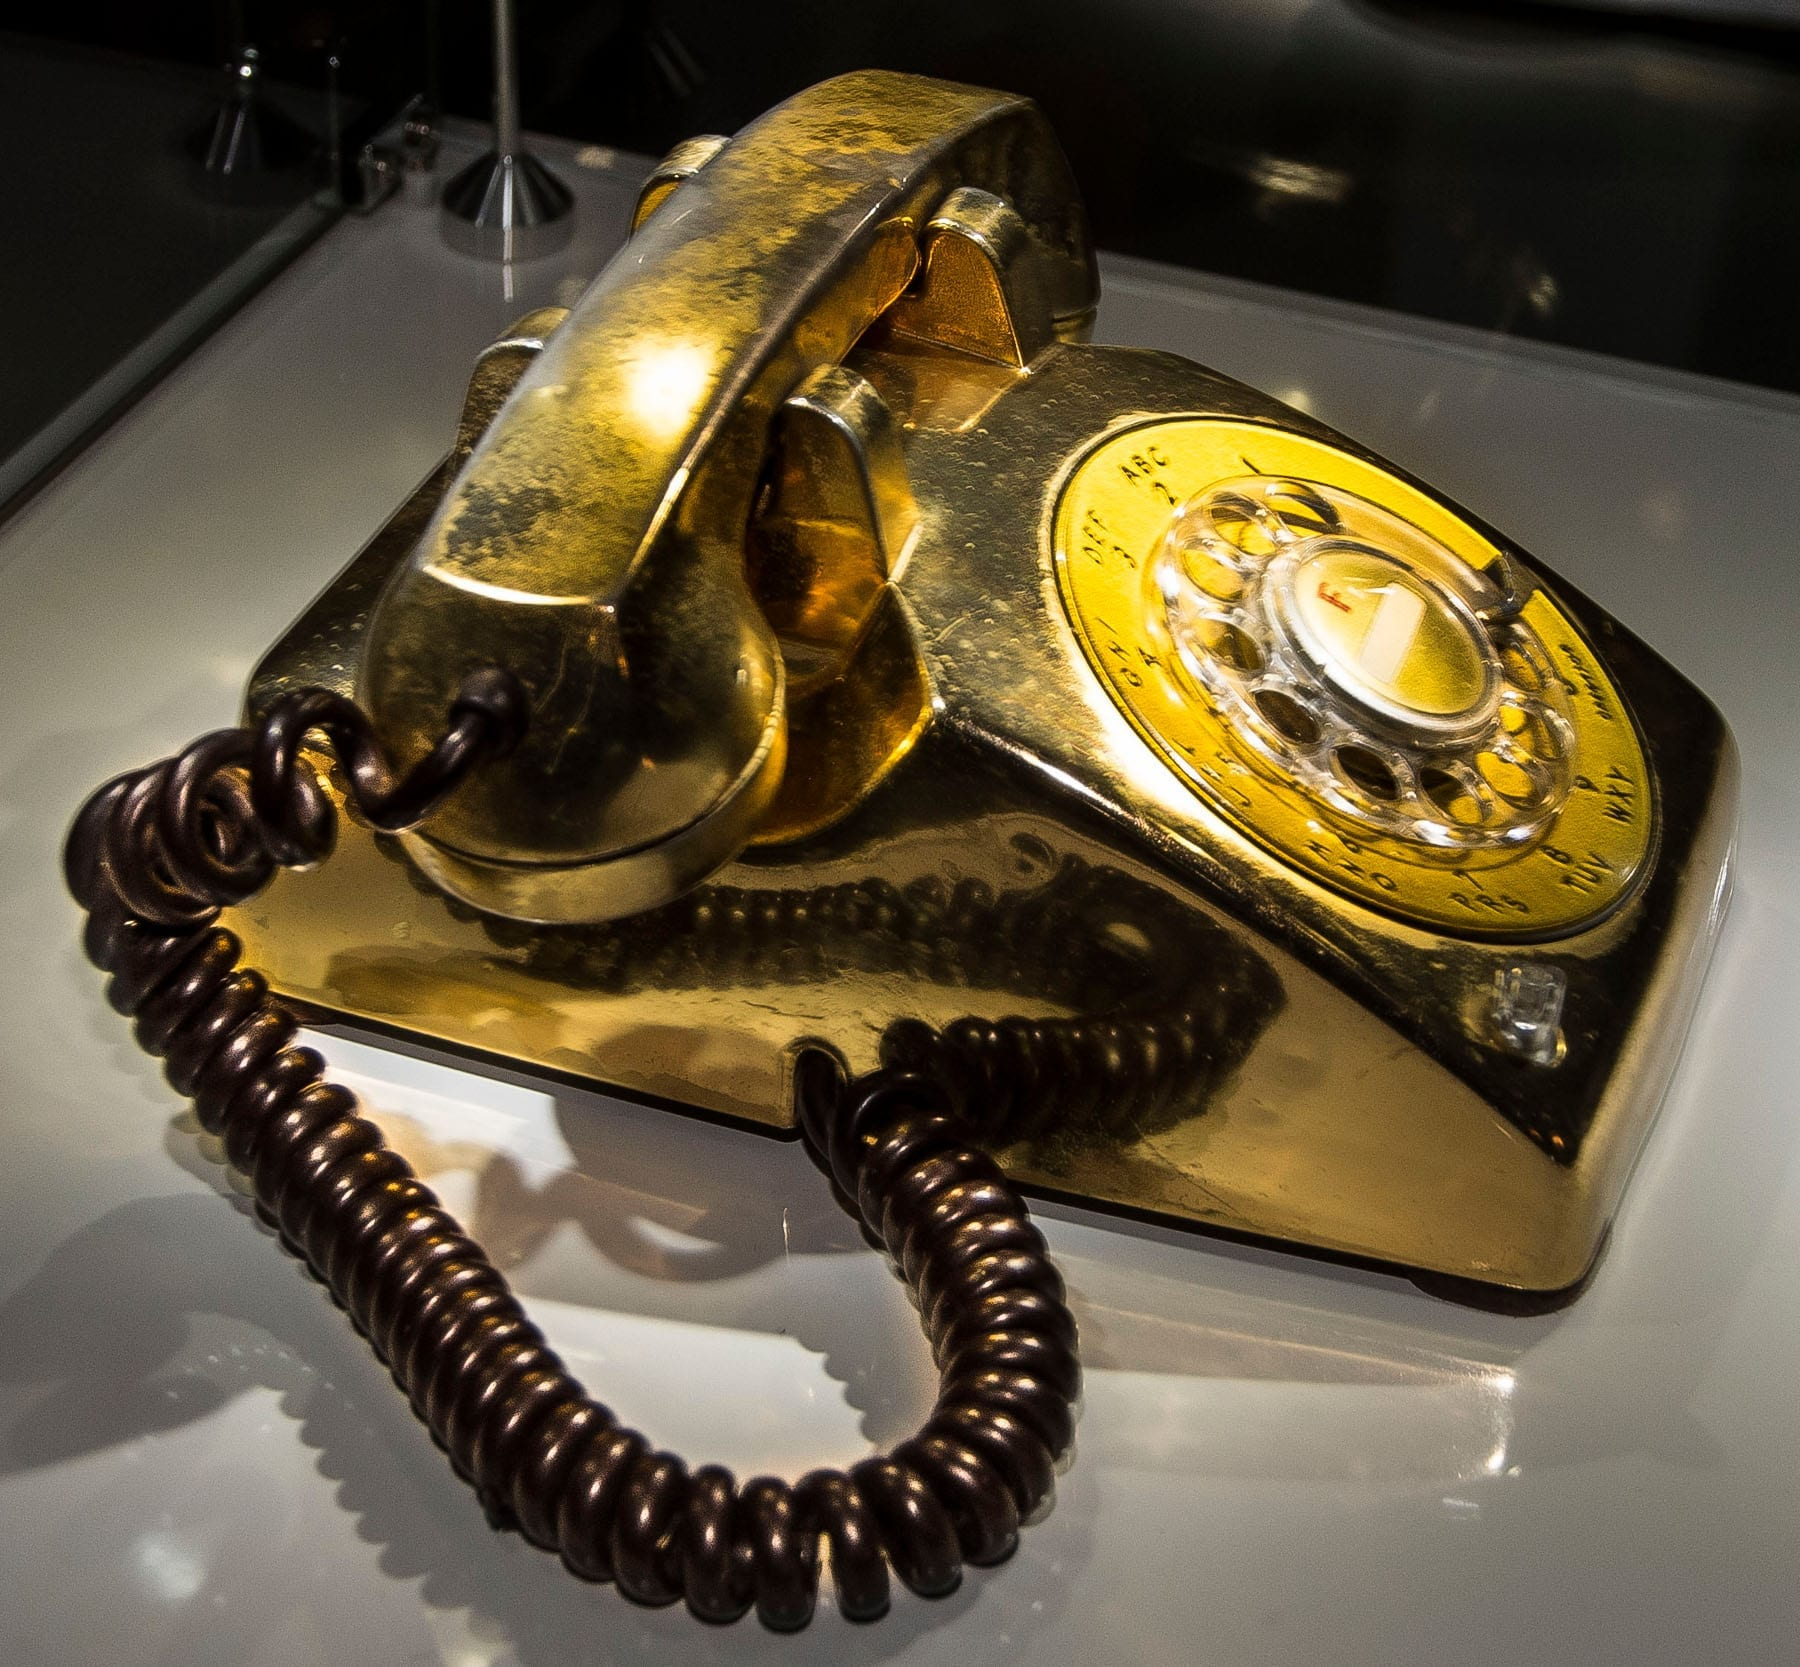 Gold telephone by beside Elvis's bed